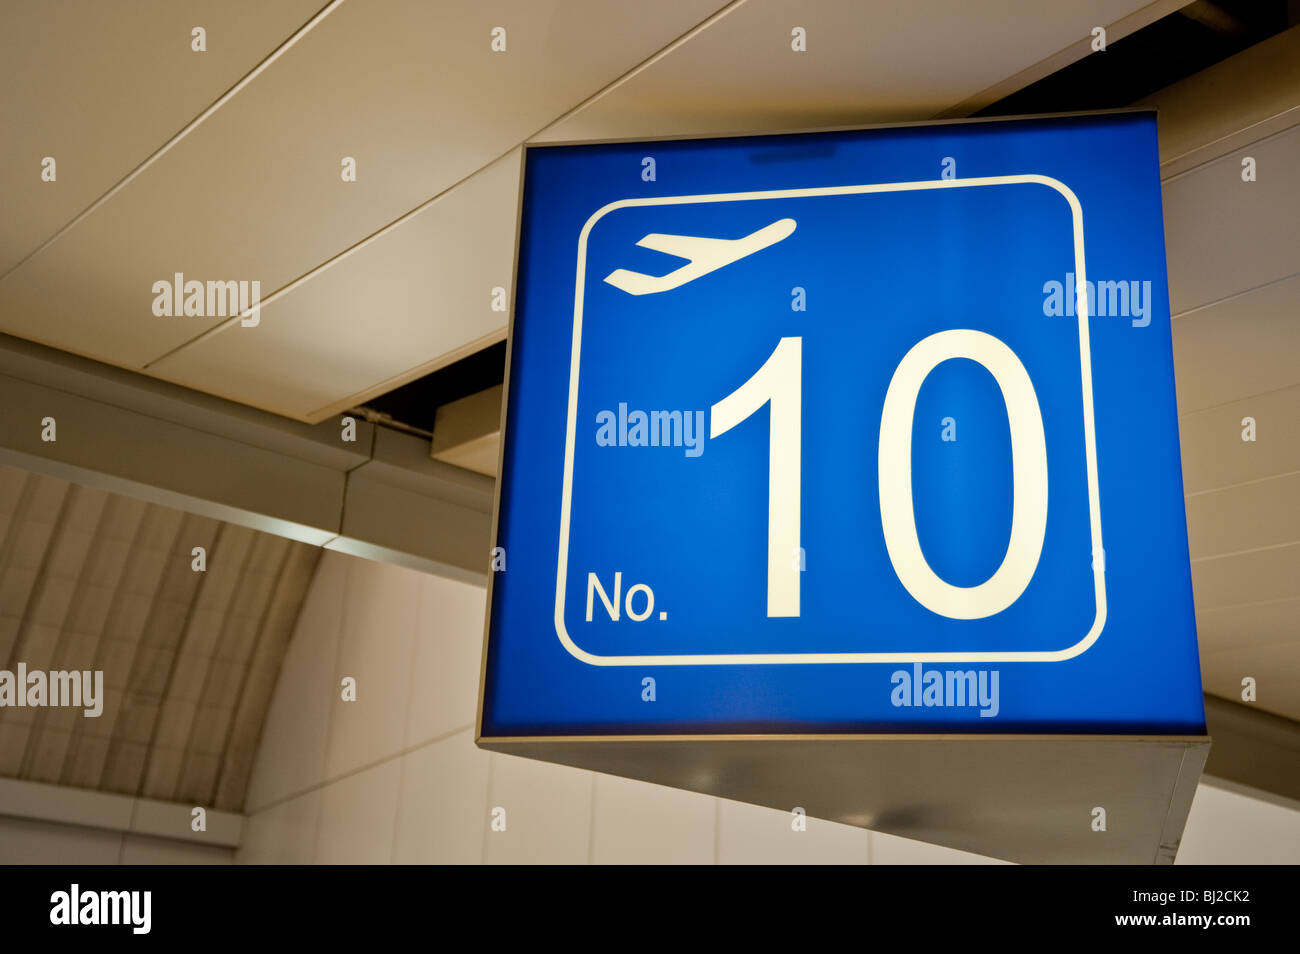 The number 10 gate sigh at an airport - Stock Image